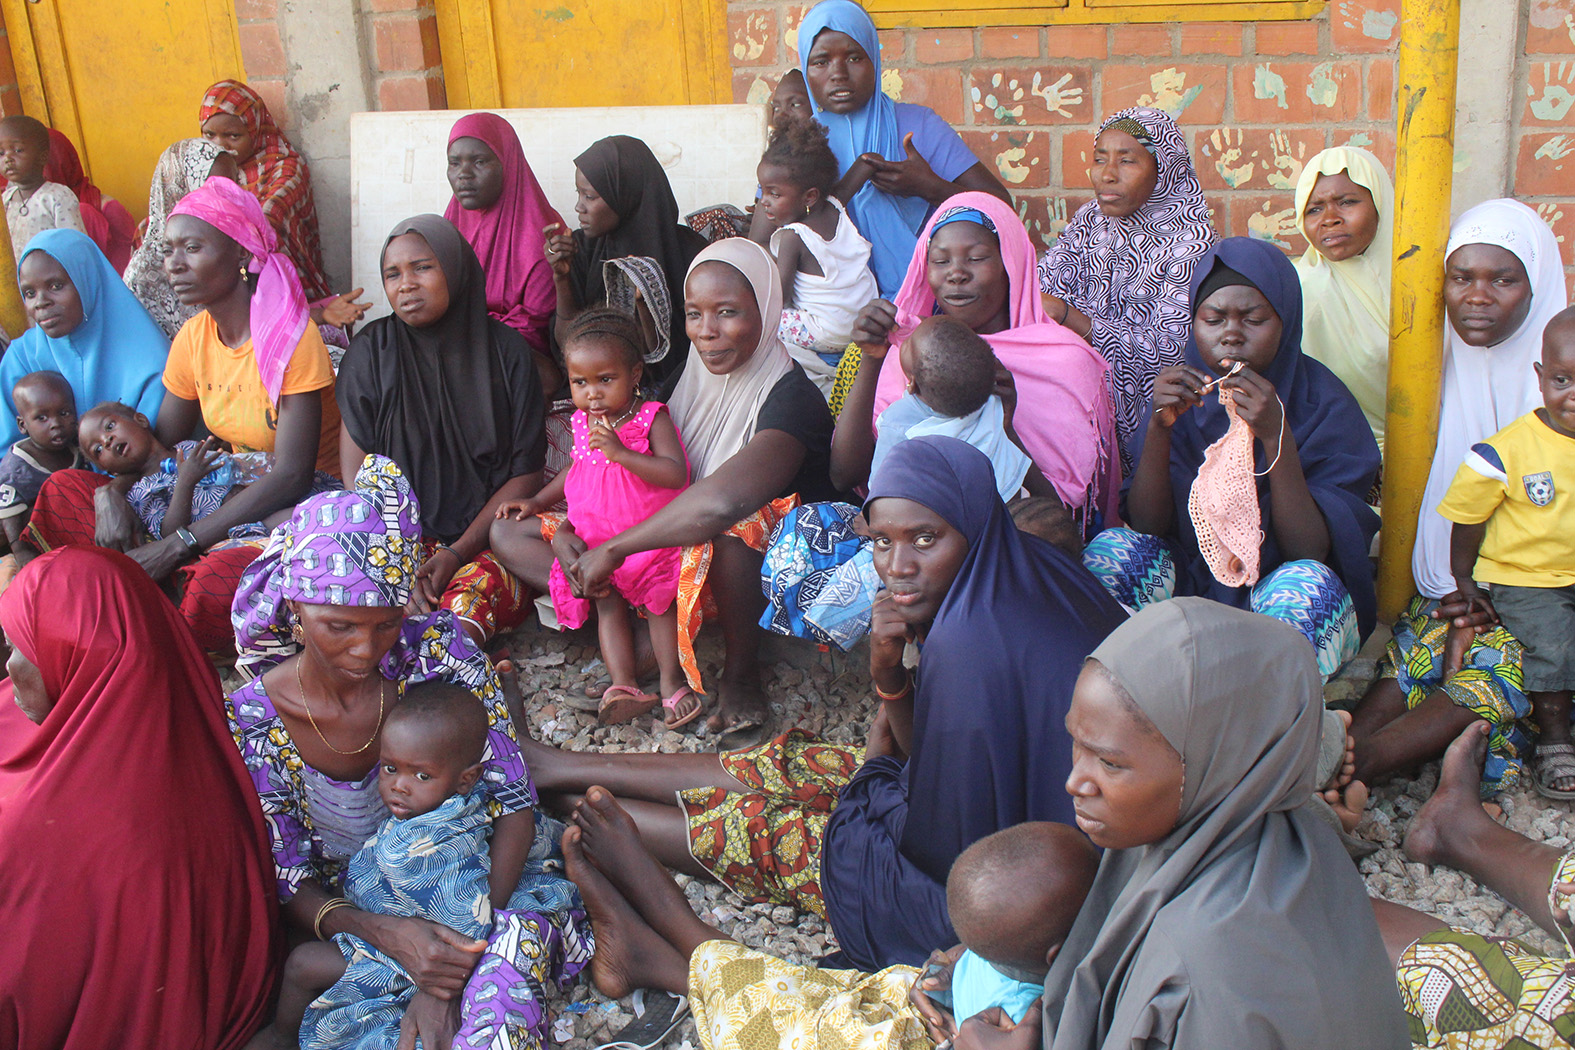 REA VISIT TO DURUMI AREA 1 IDP CAMP IN ABUJA AS PART OF HER COOPERATE SOCIAL RESPONSIBILITIES